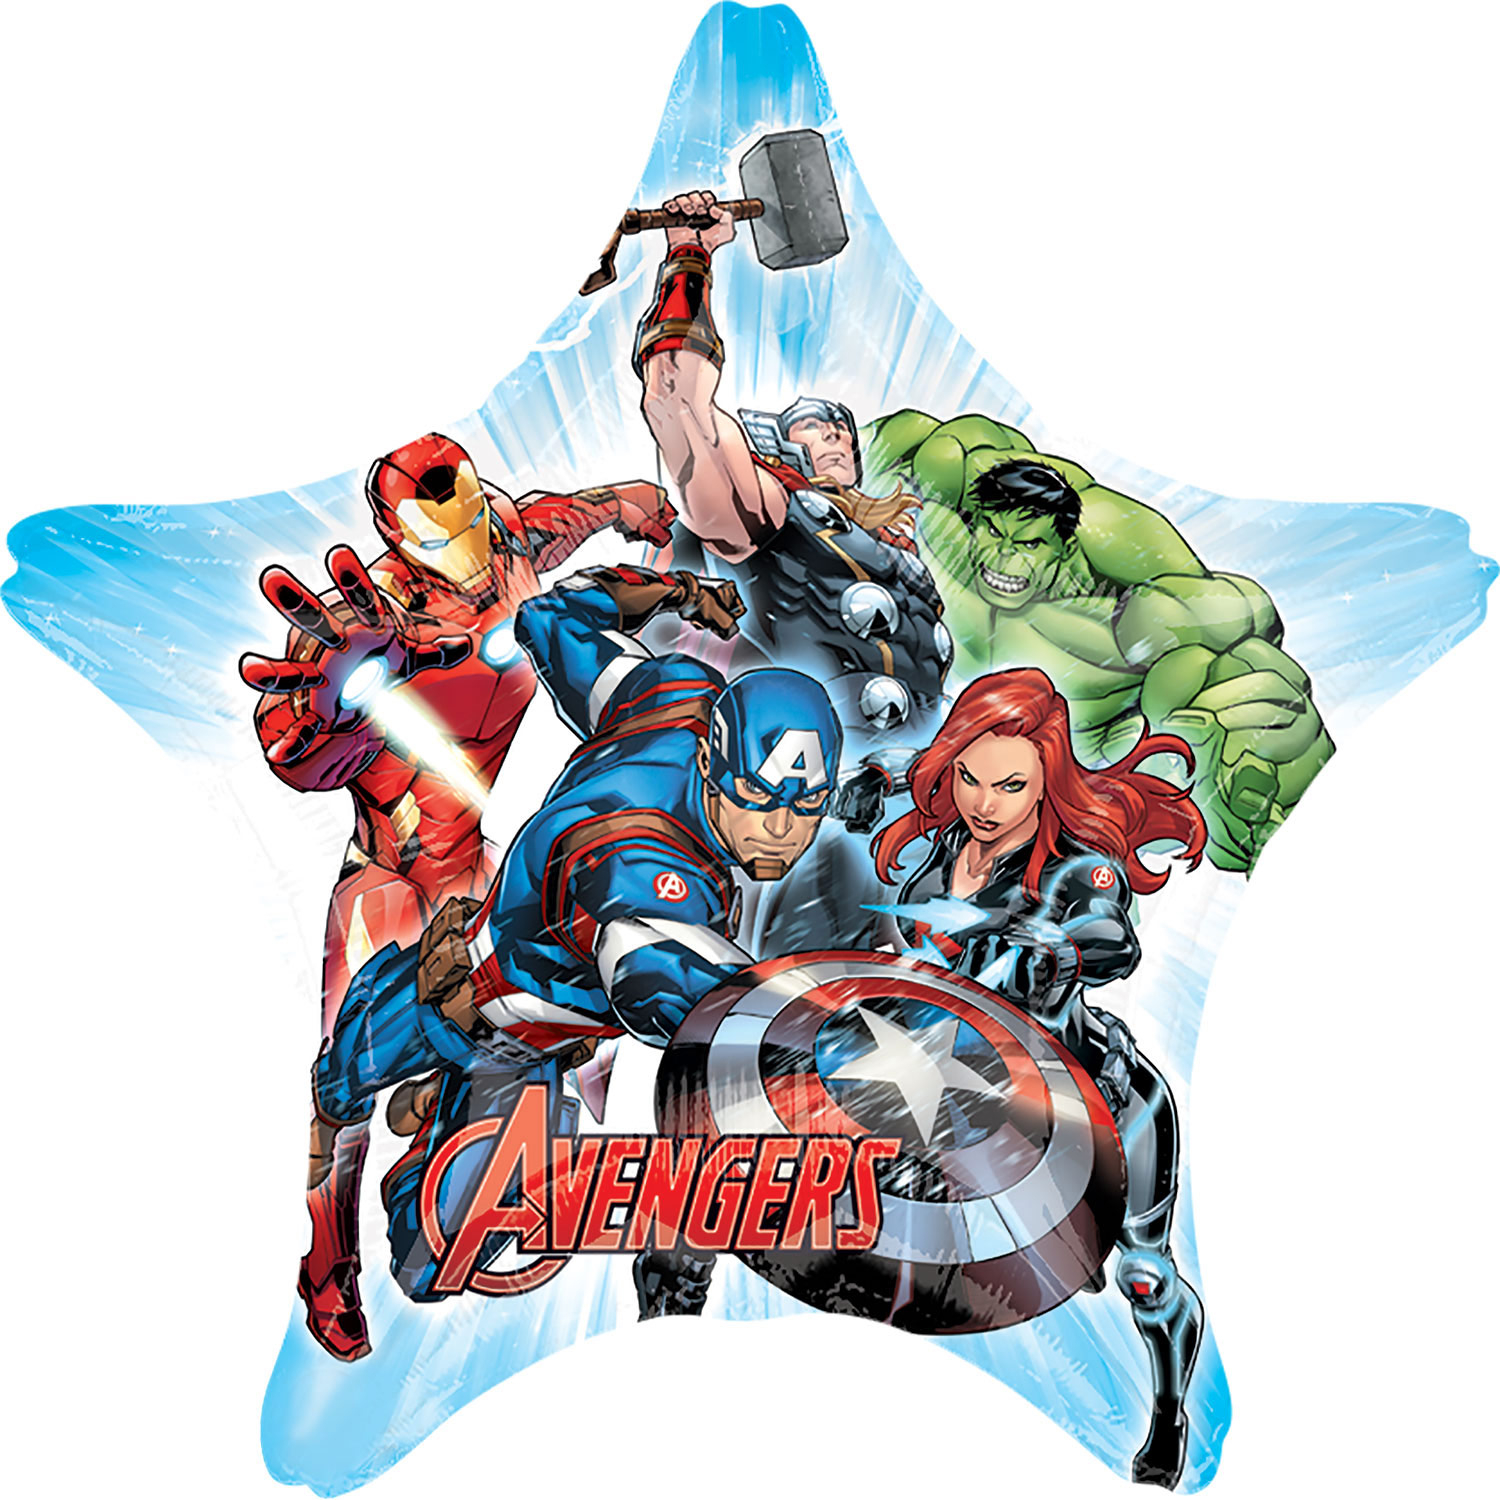 Avengers helium filled foil balloon